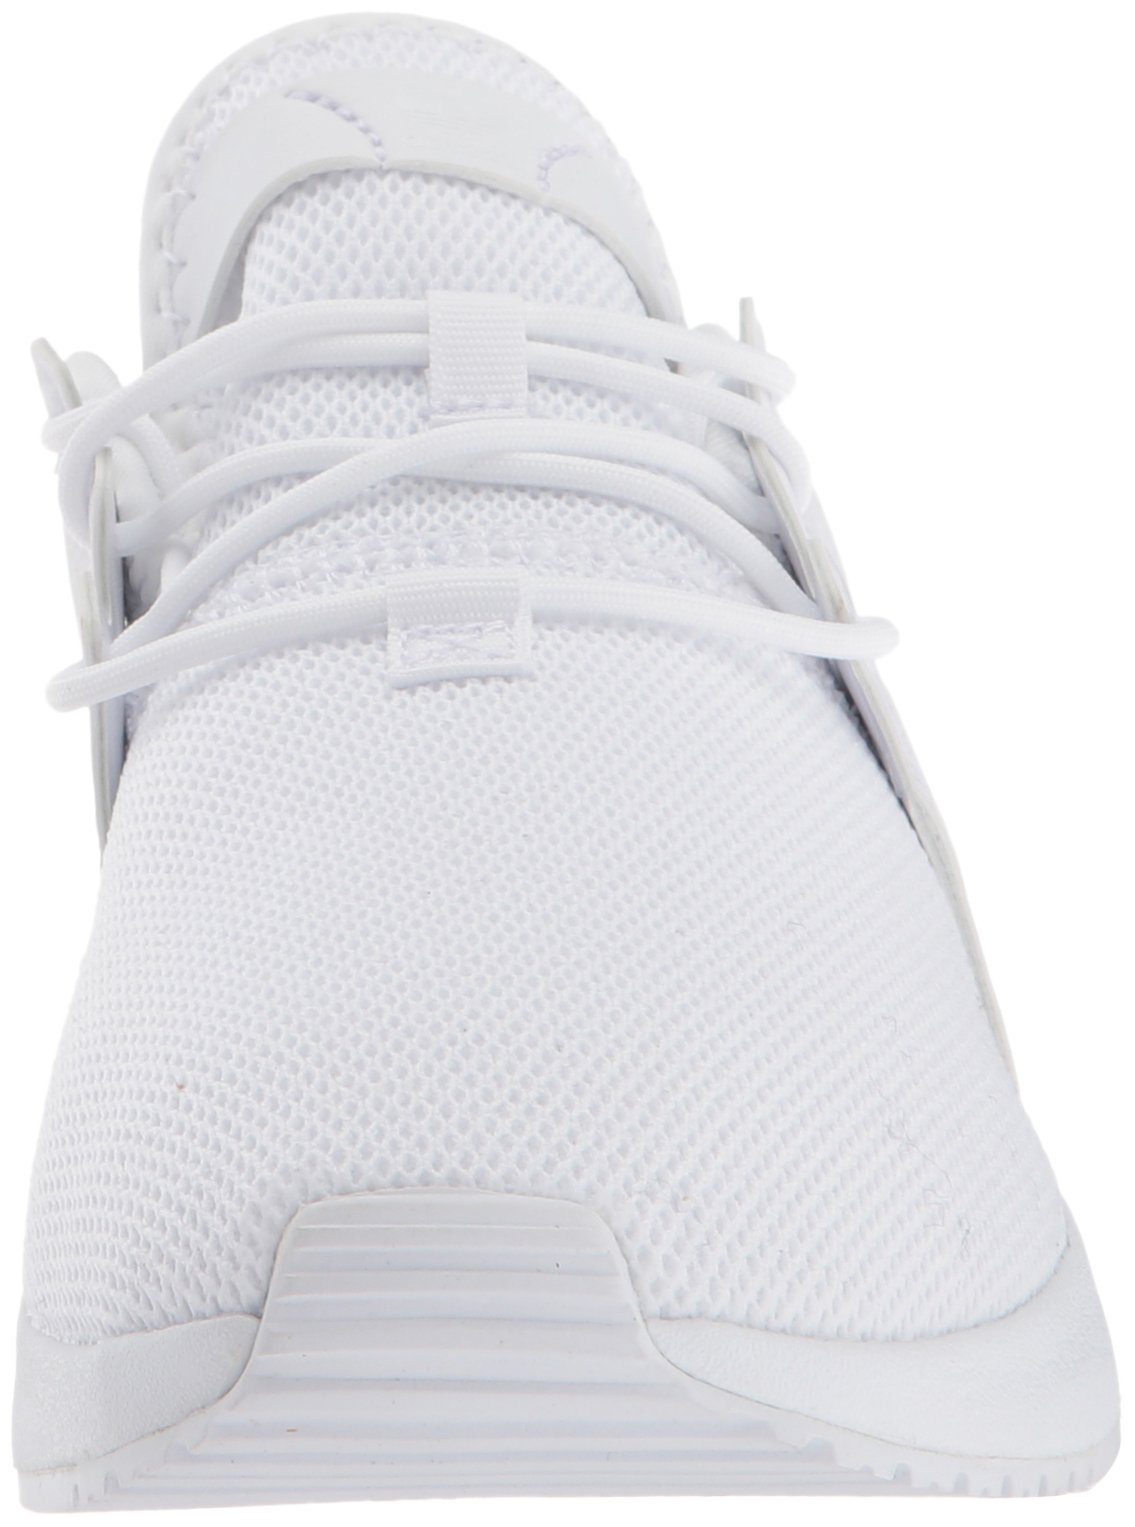 adidas Originals Boys' X_PLR C, White/White/White, 10.5 M US Little Kid by adidas Originals (Image #4)